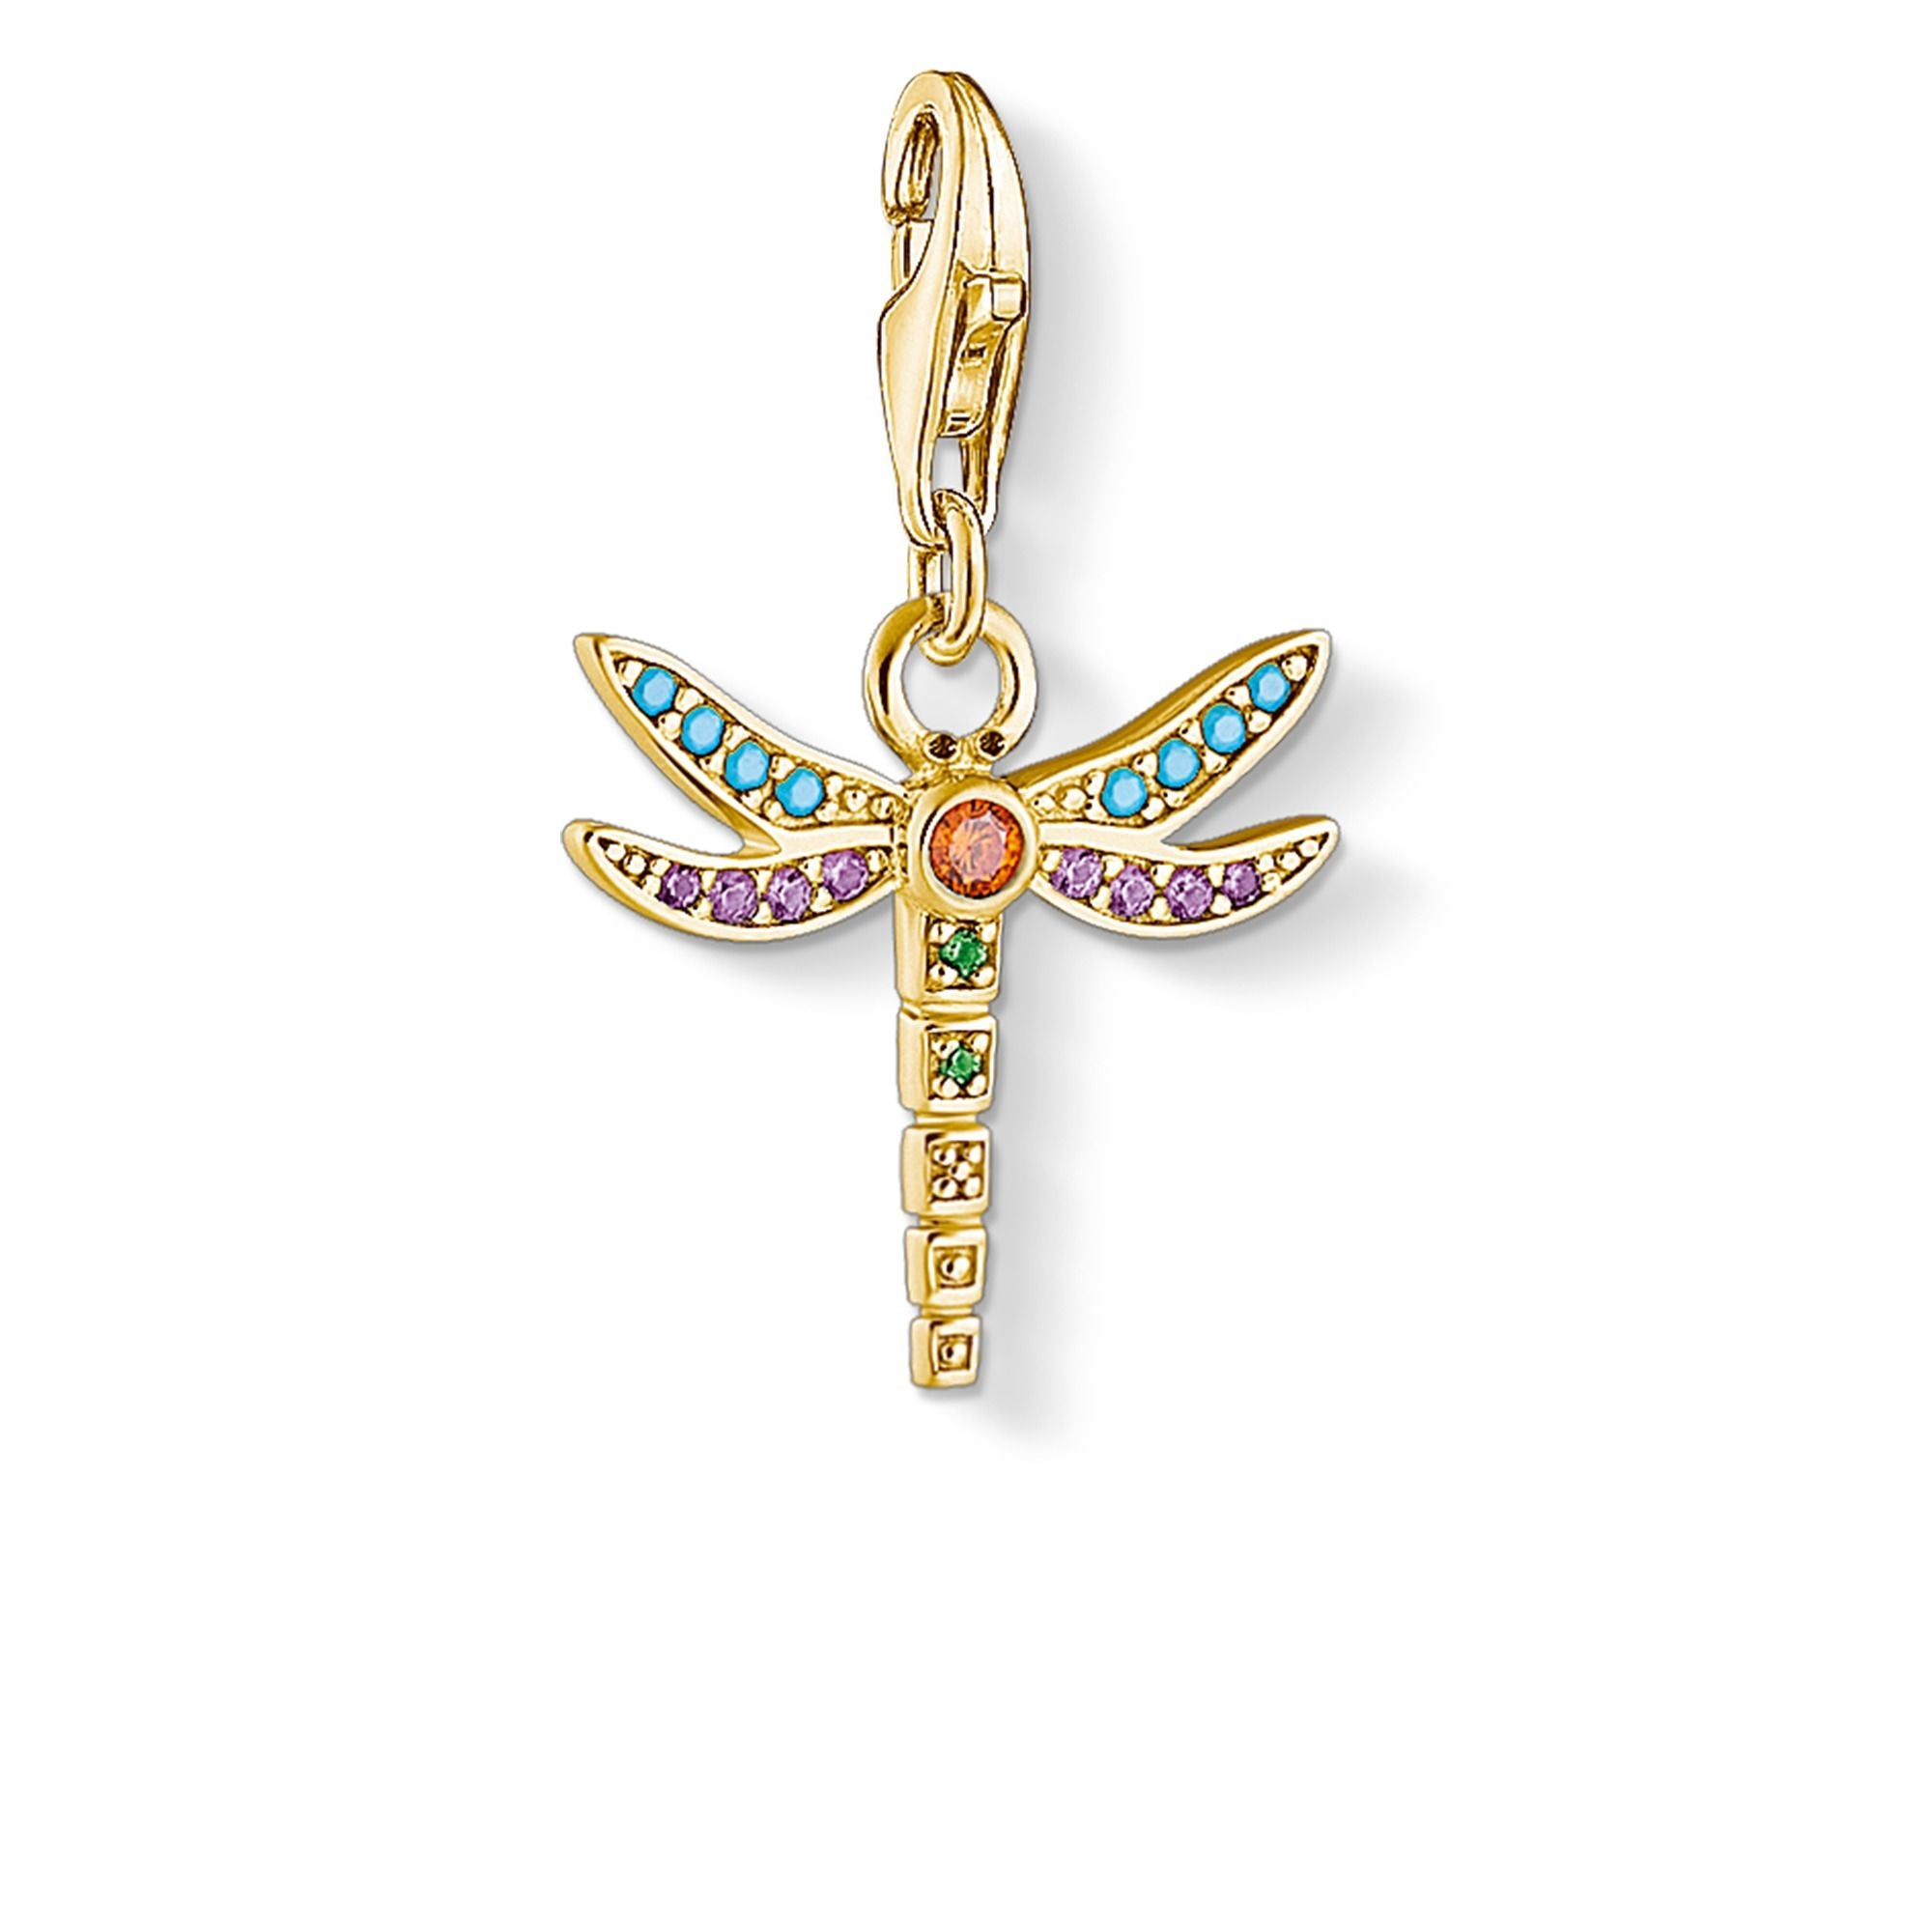 Thomas Sabo Charm Club Dragonfly 1758-974-7